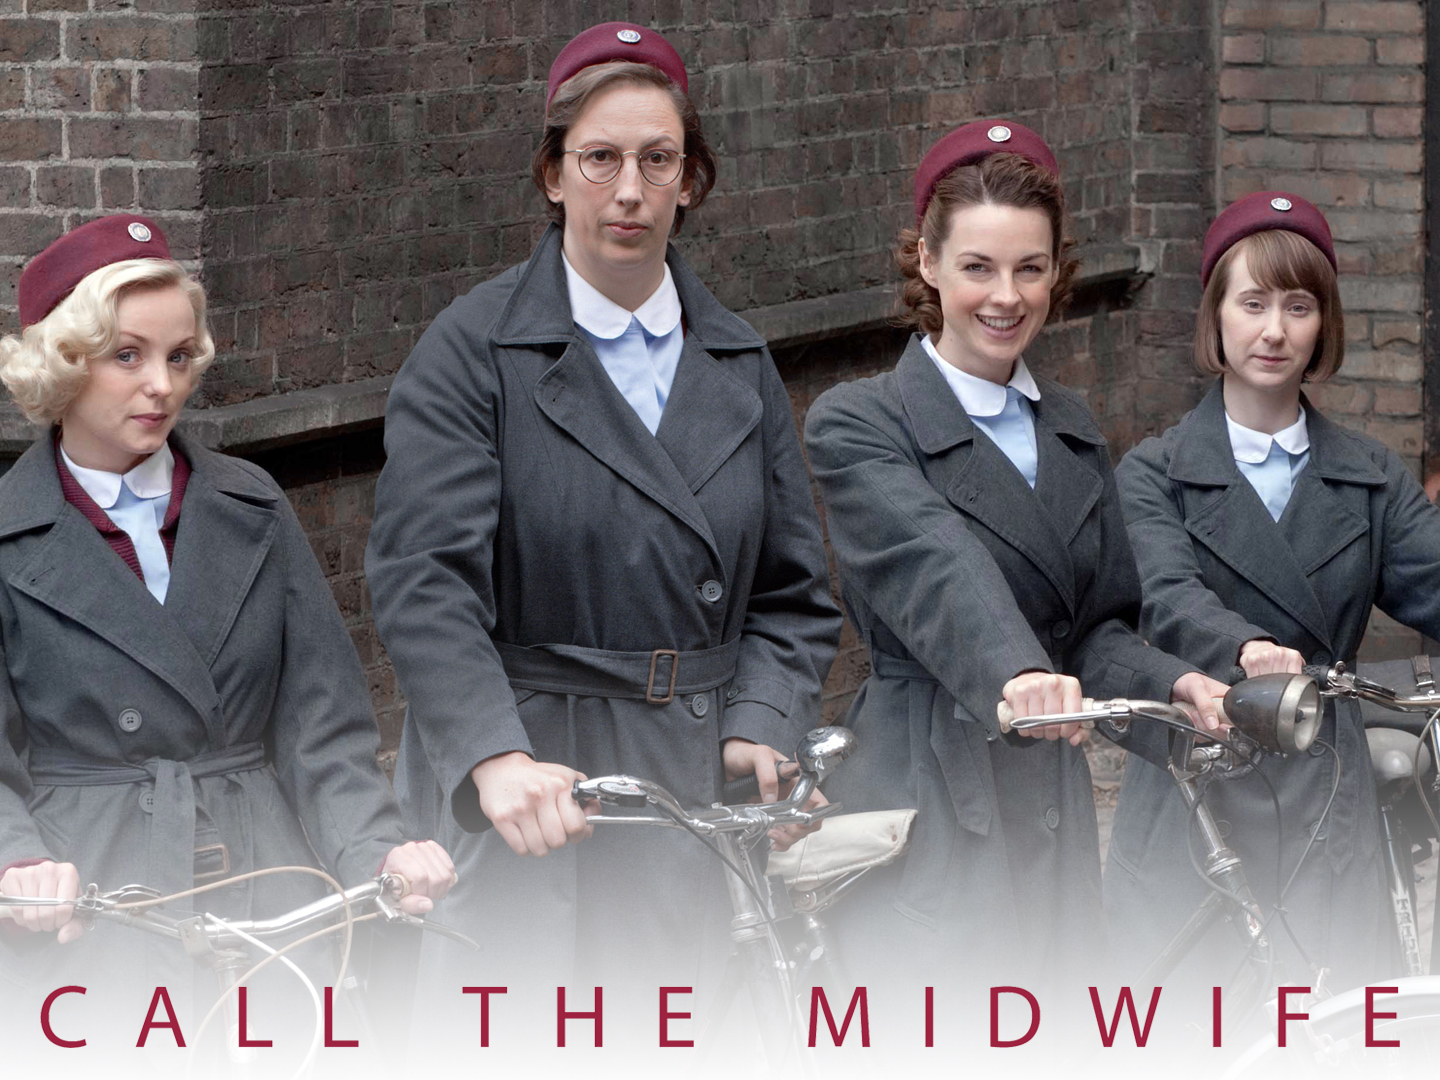 b804f1fc68b379641741c5e543bd5abe-call-the-midwife-season-1.jpg